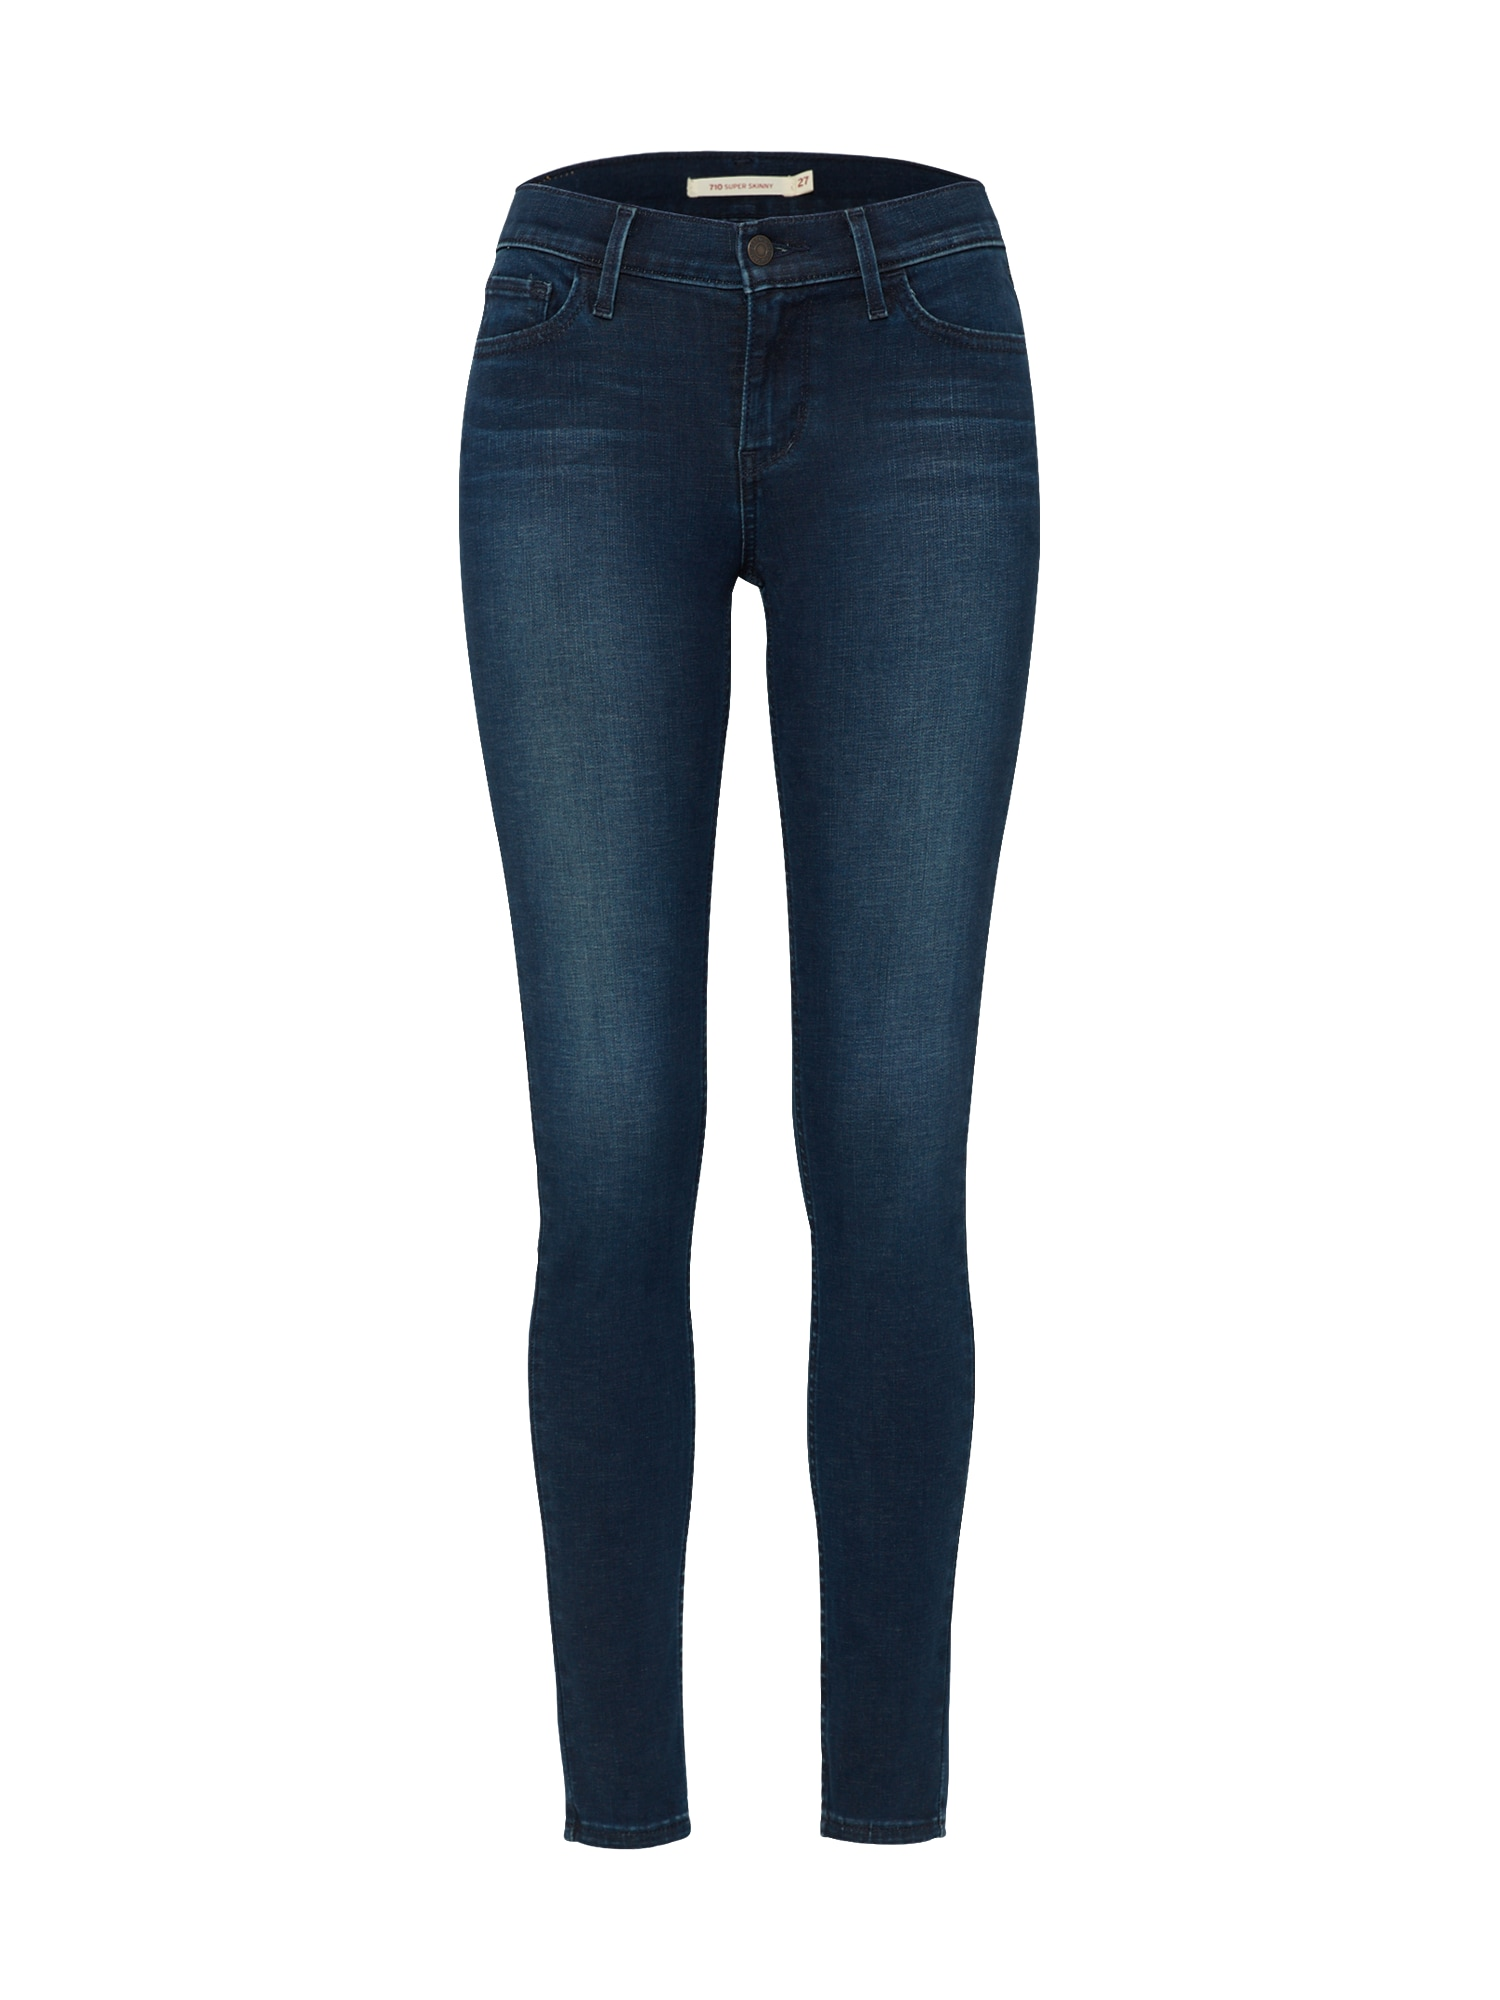 LEVI'S Dames Jeans 710 Innovation Super Skinny blue denim